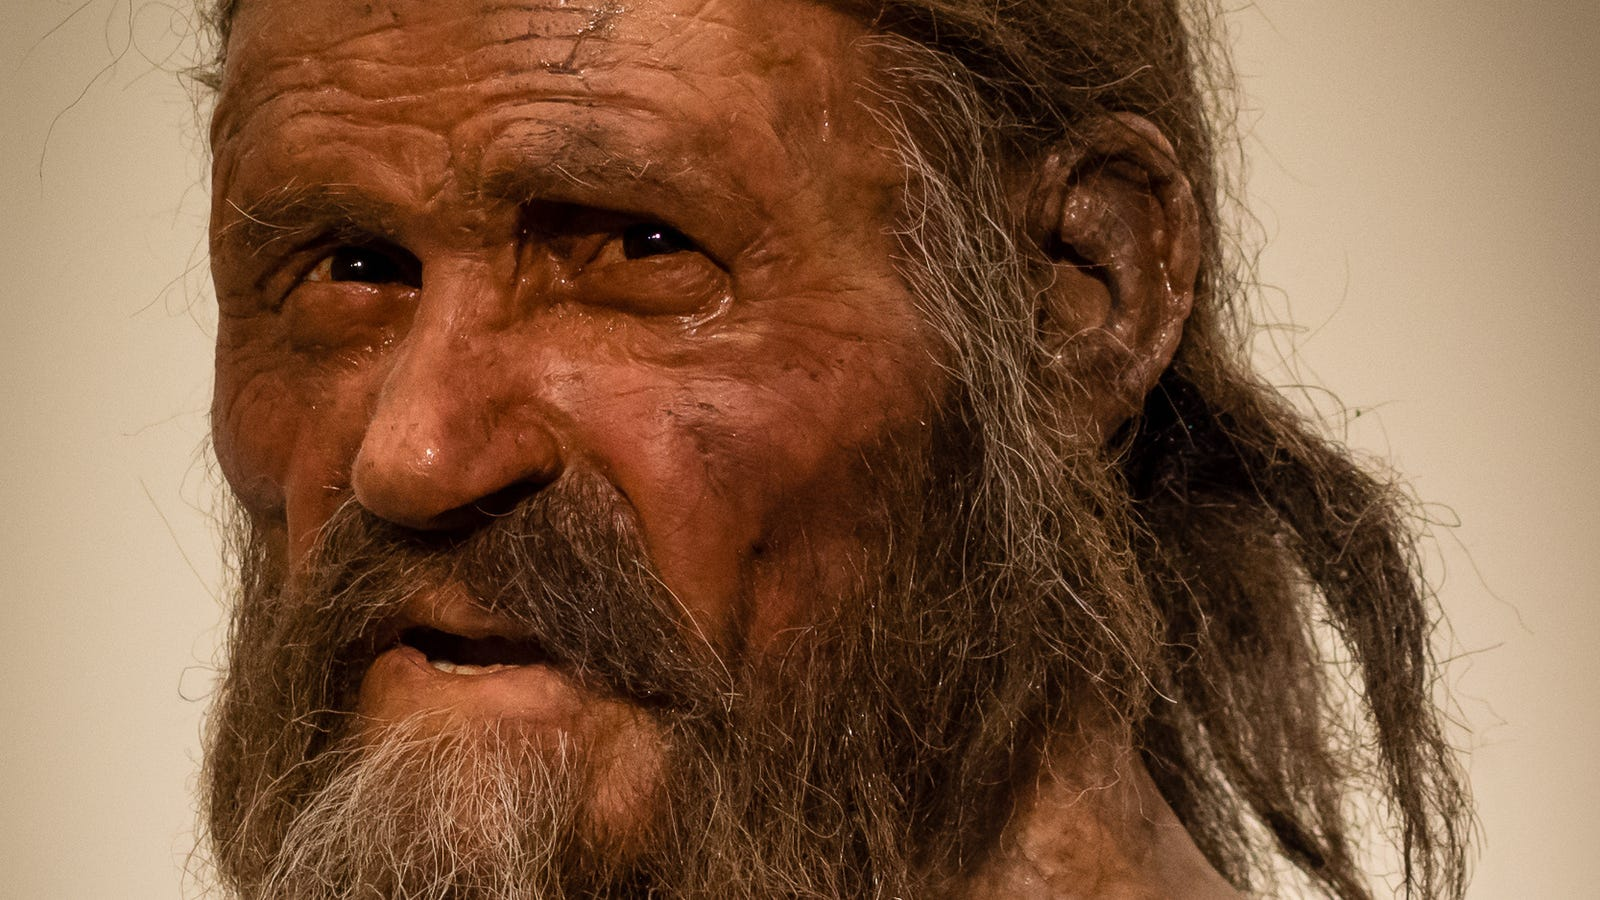 Final Days of Ötzi the Iceman Revealed Through New Analysis of His Tools